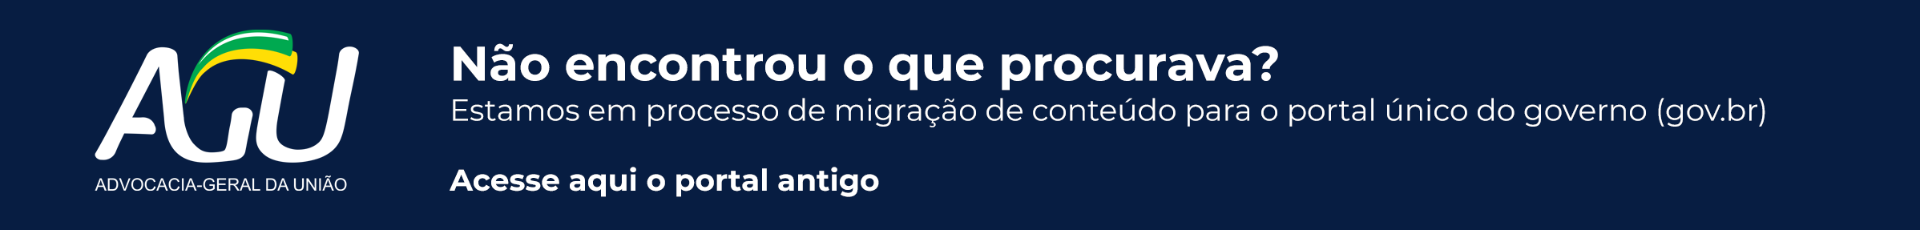 Banner migracao.png